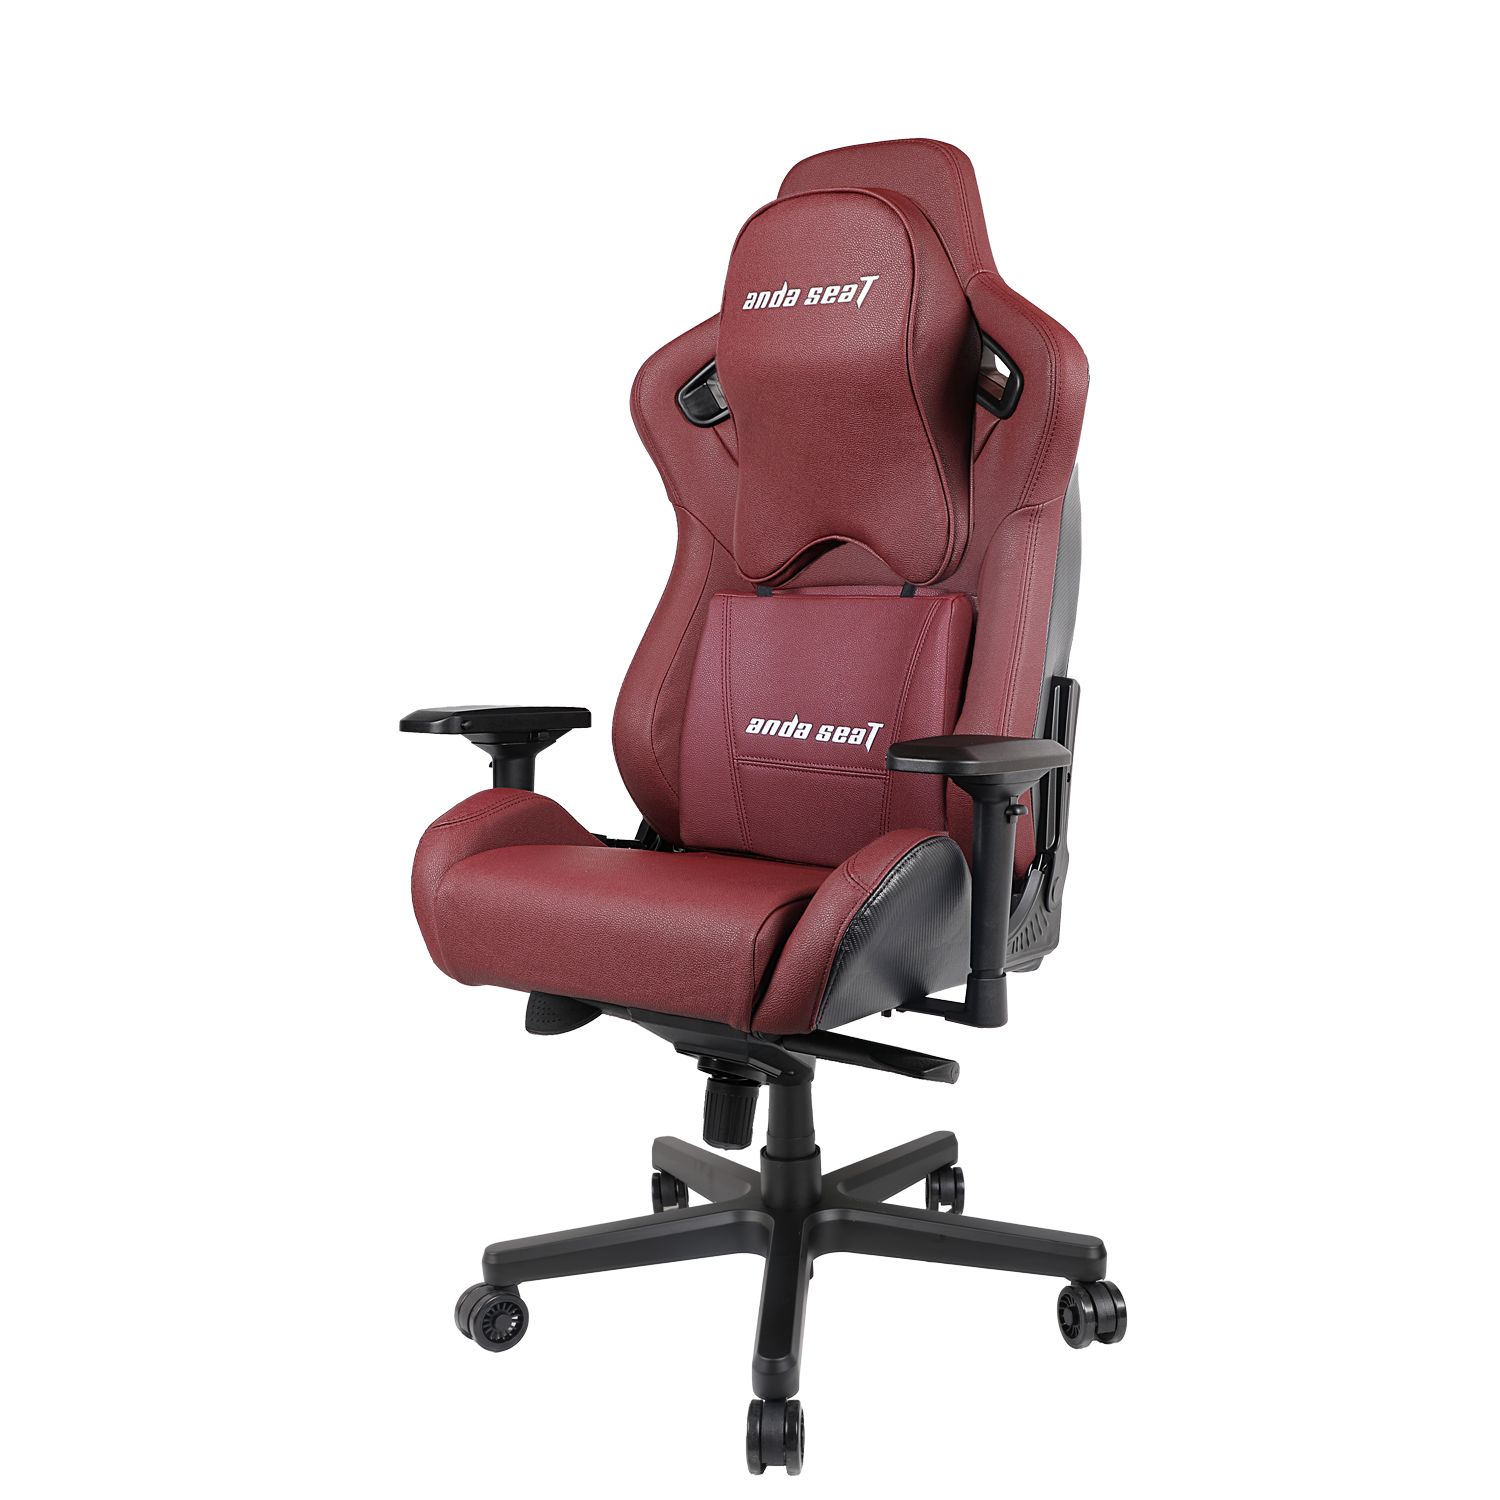 Kaiser Premium Gaming Chair - BMW Leather